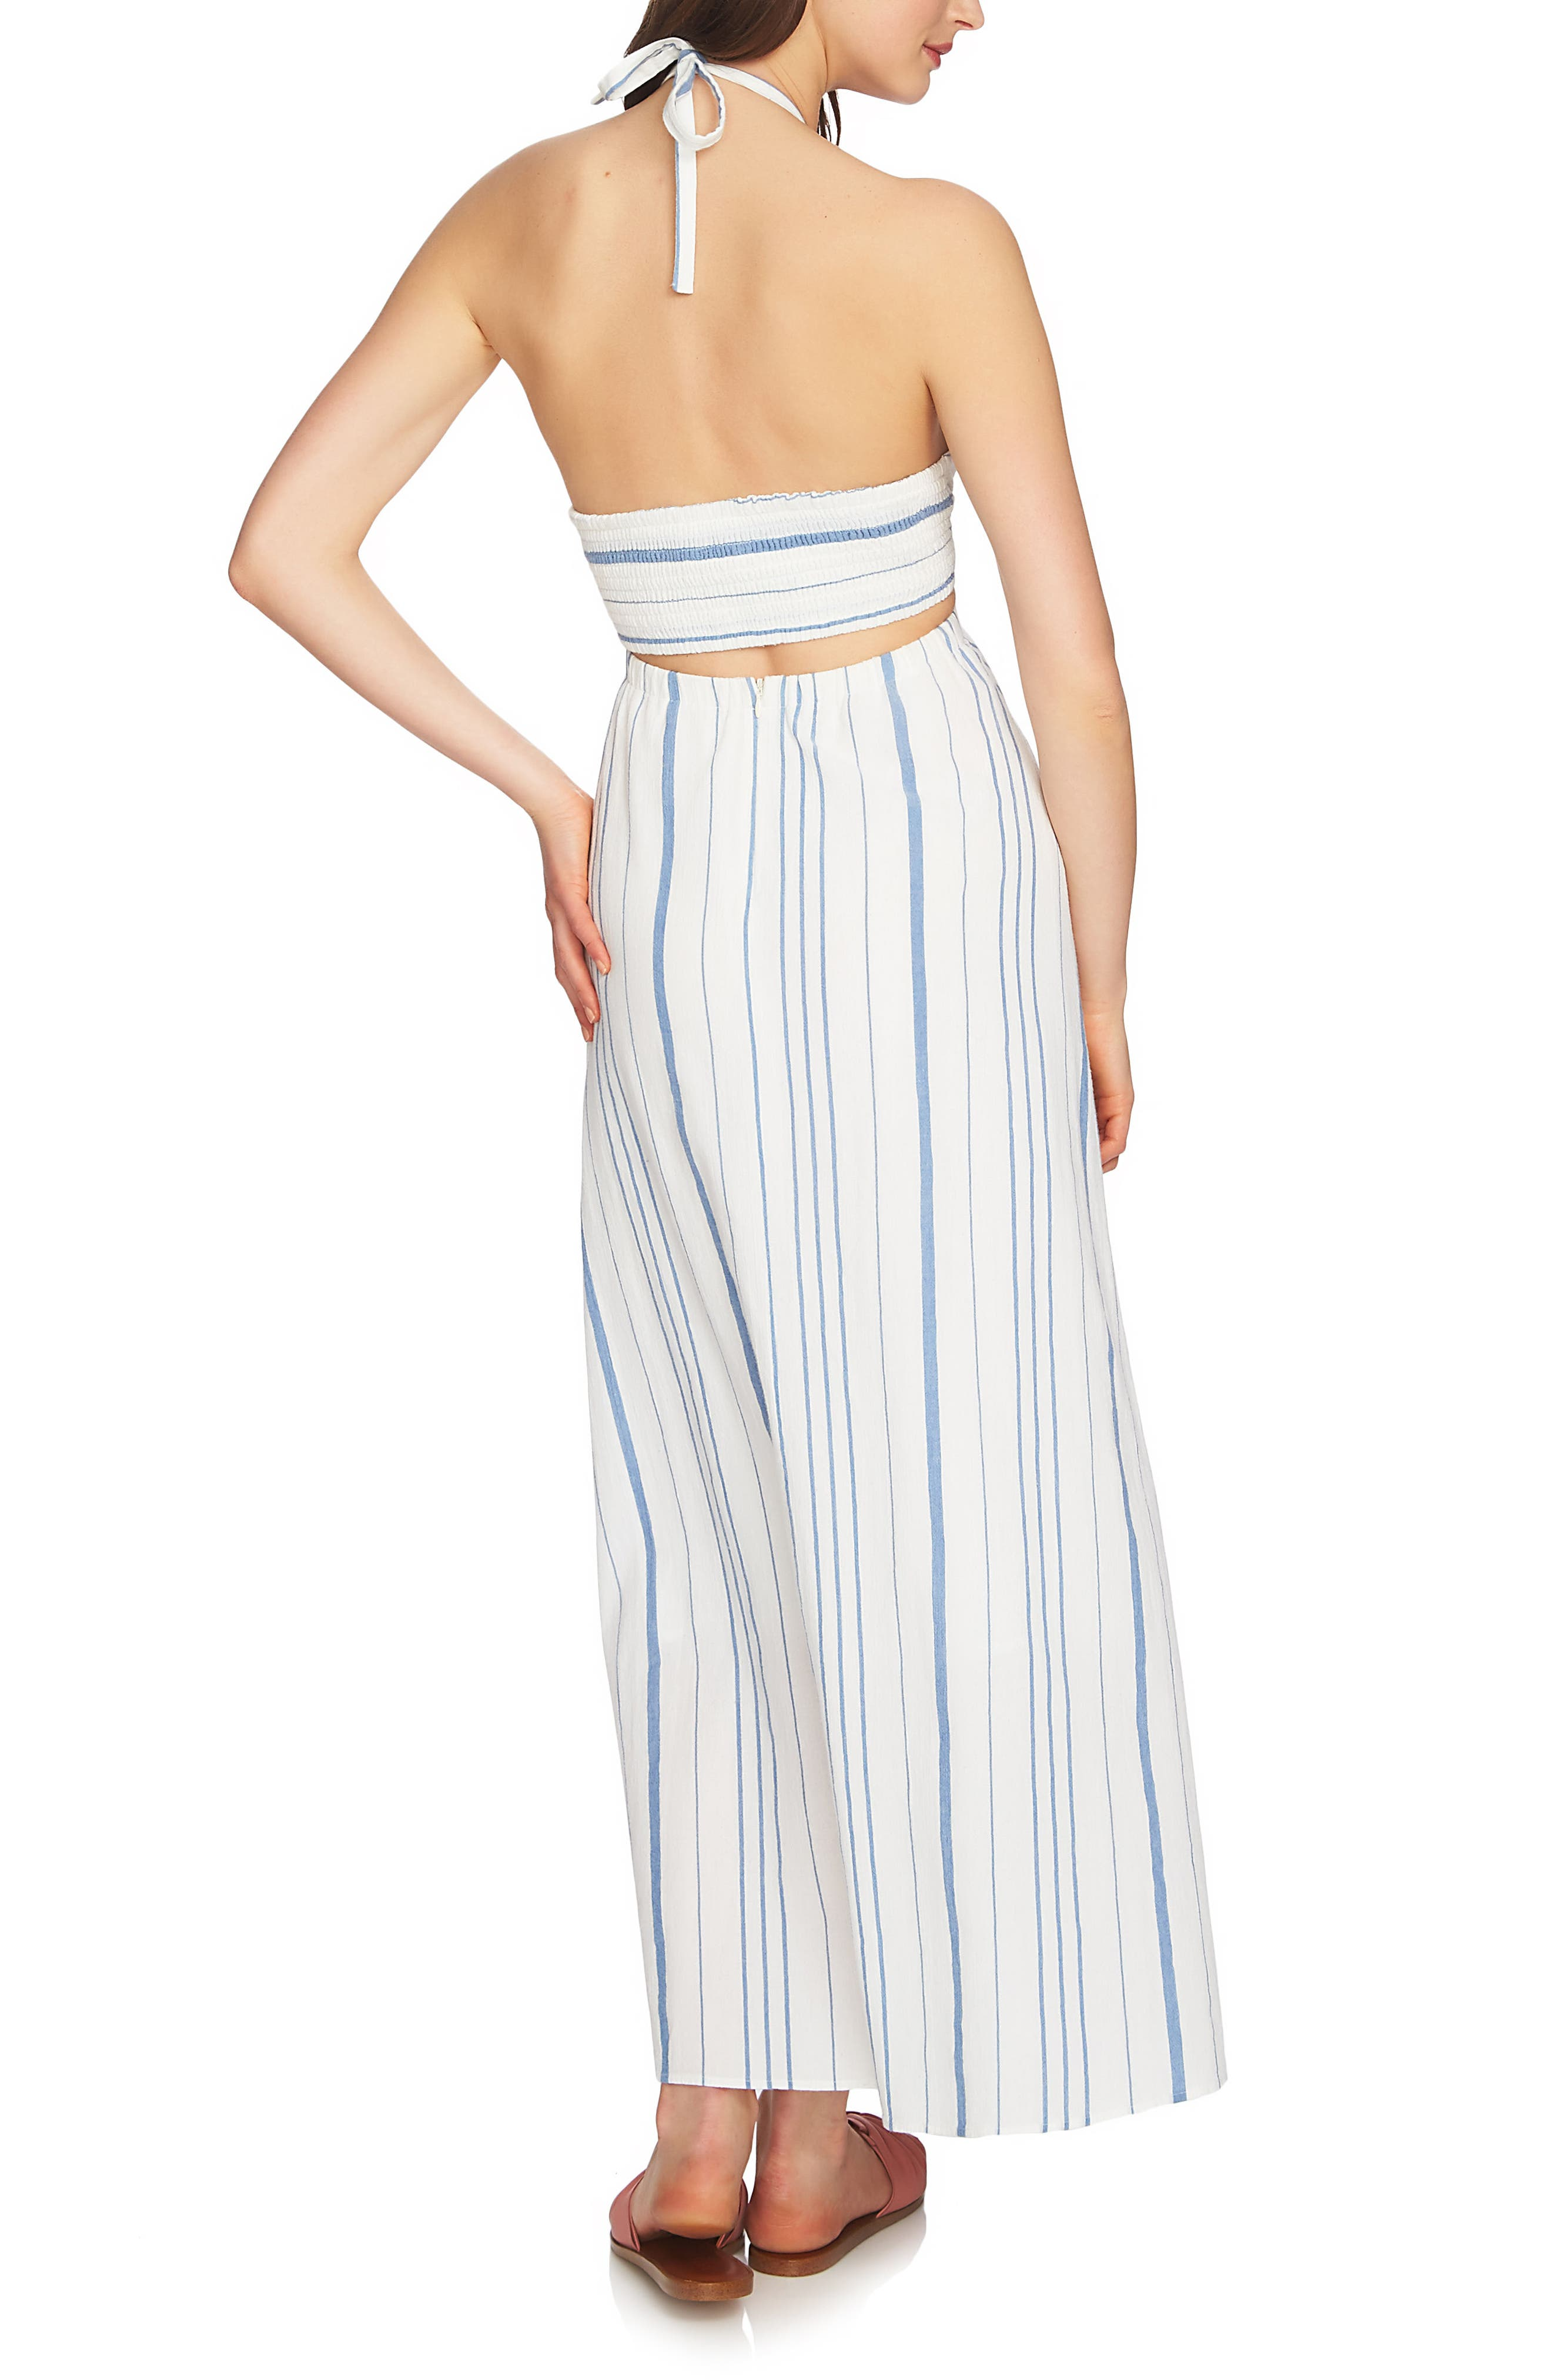 Cinched Bodice Maxi Dress,                             Alternate thumbnail 2, color,                             908